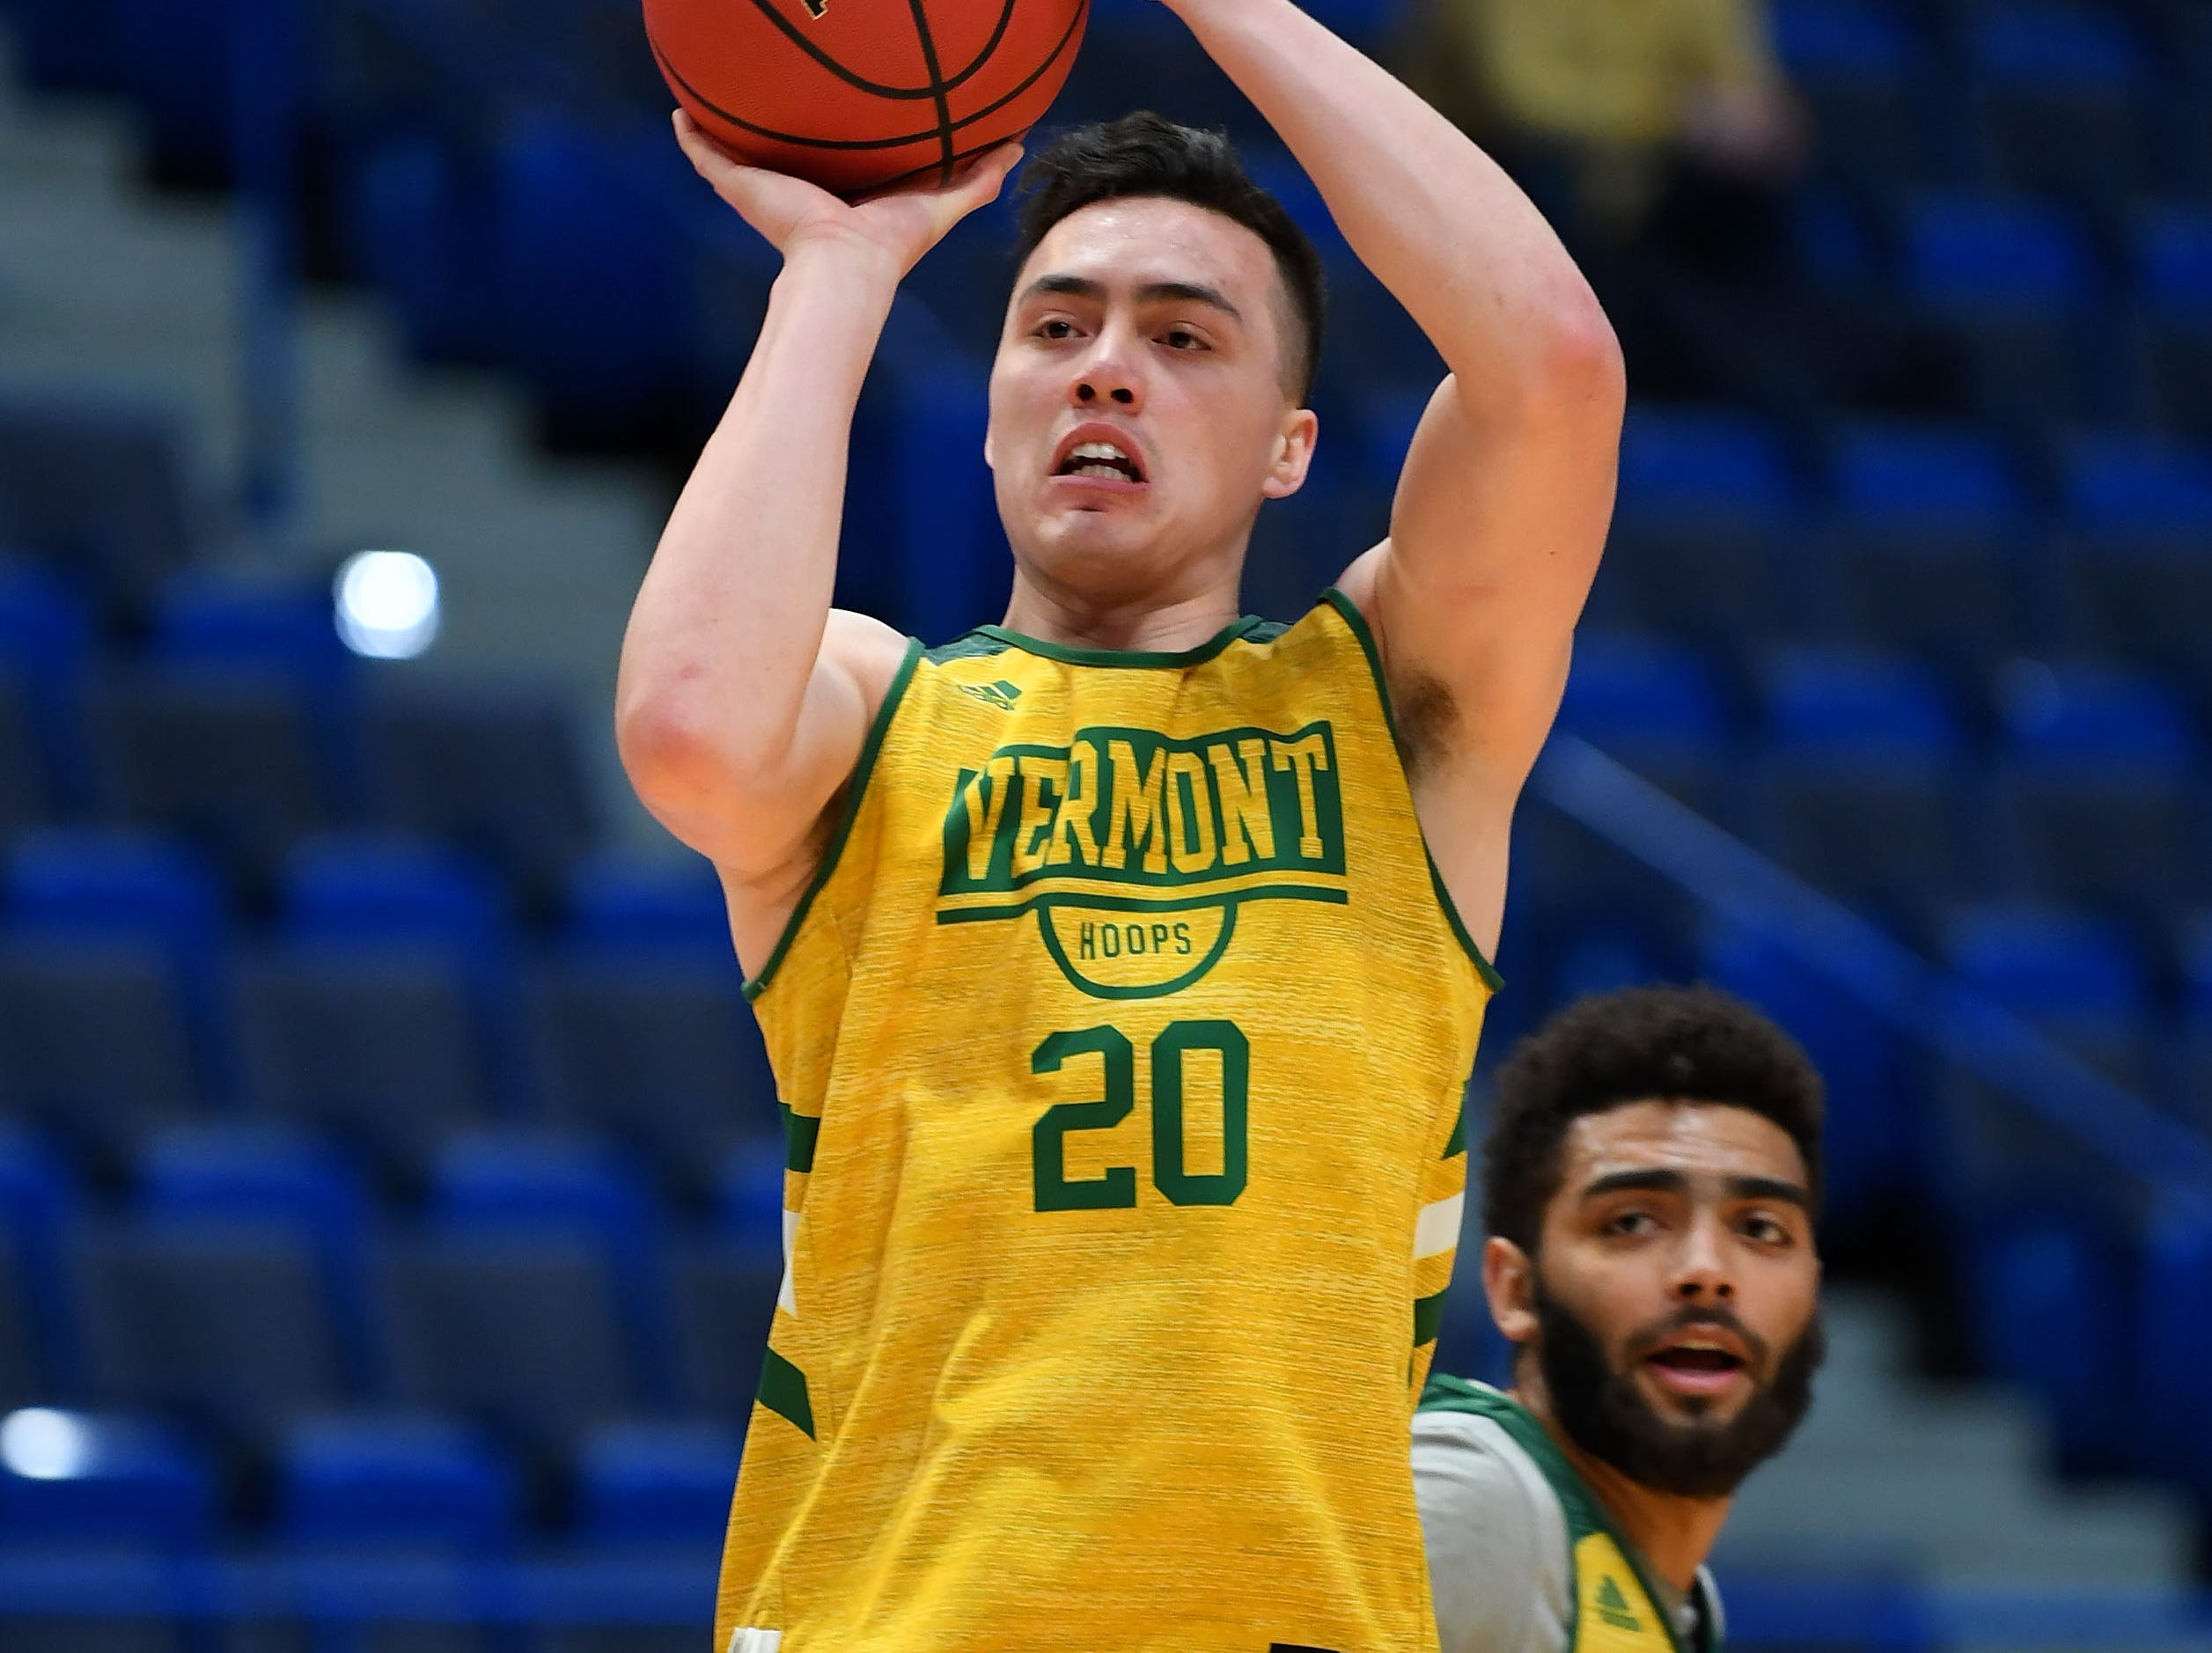 Mar 20, 2019; Hartford, CT, USA; Vermont Catamounts guard Ernie Duncan (20) attempts a shot during practice before the first round of the 2019 NCAA Tournament at XL Center. Mandatory Credit: Robert Deutsch-USA TODAY Sports